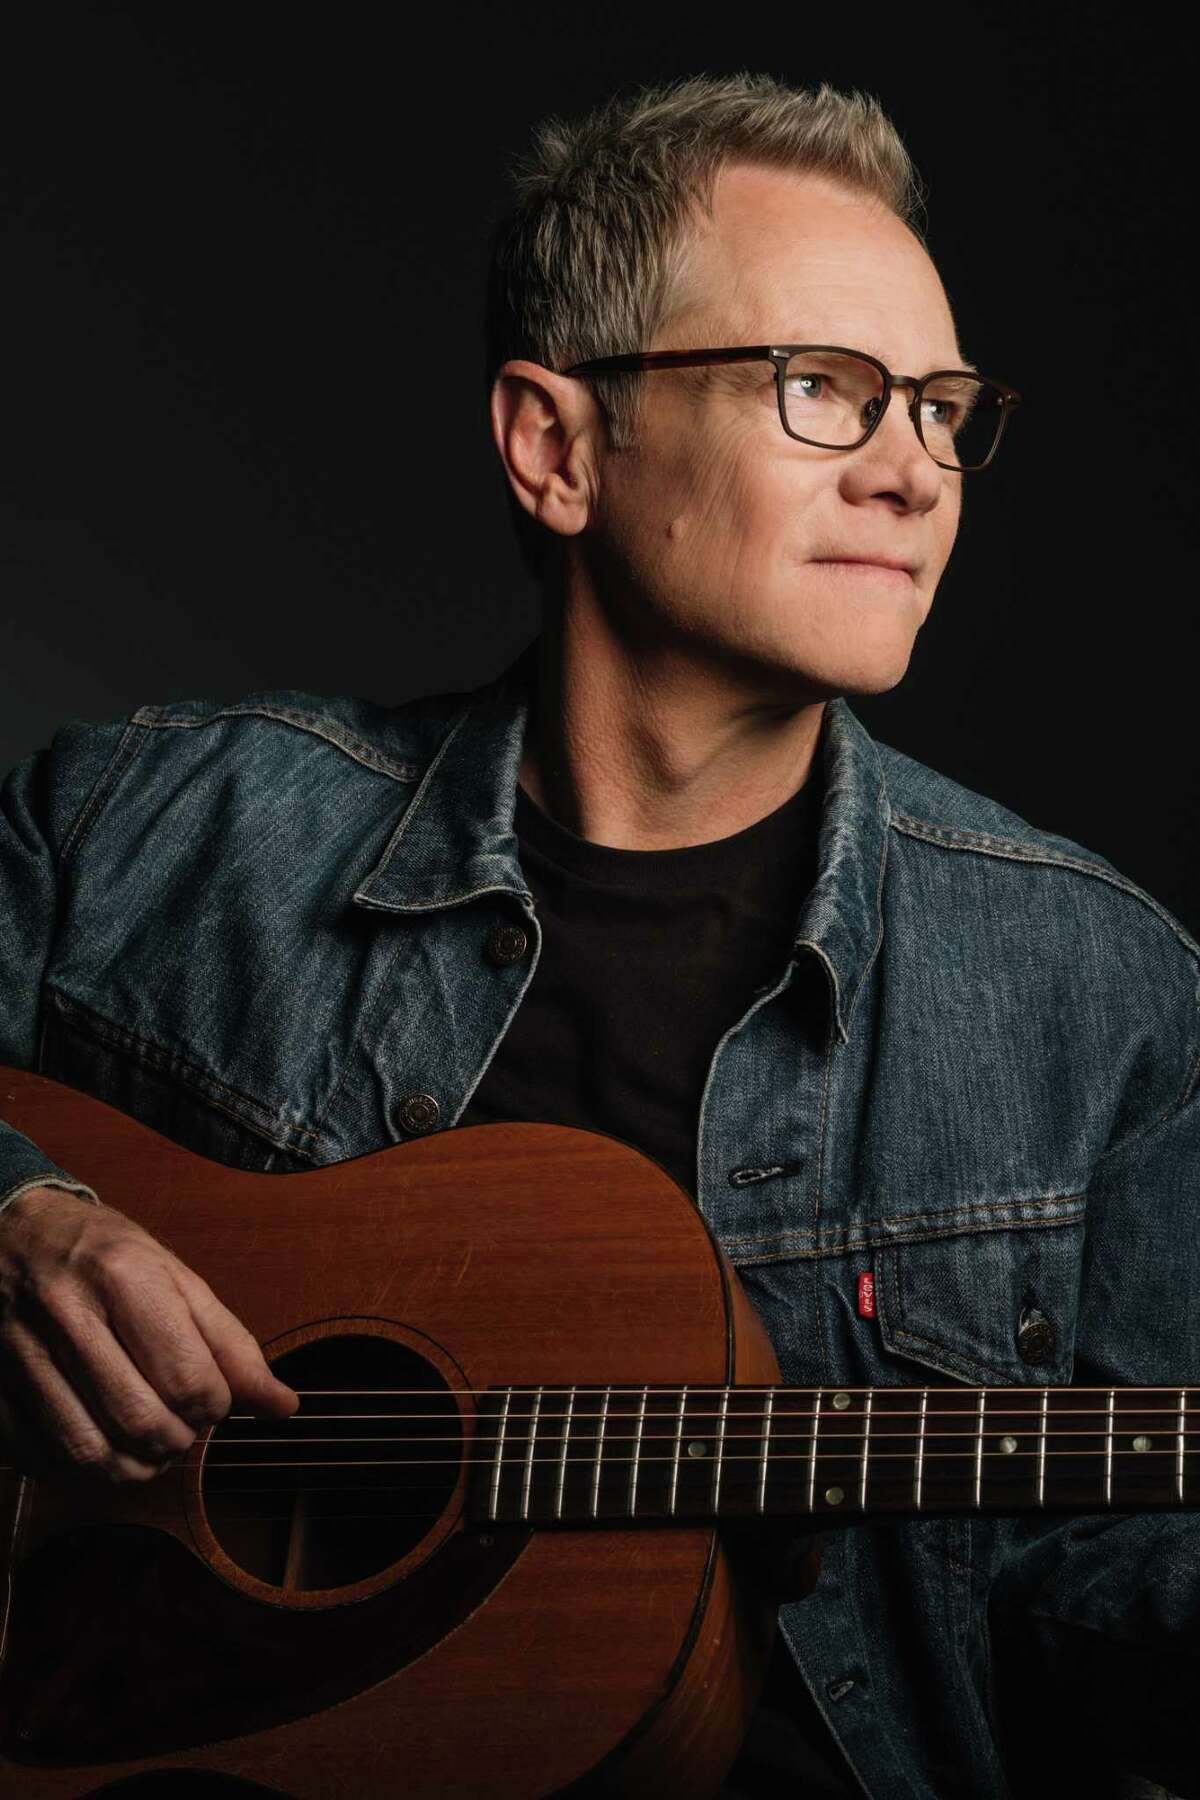 Christian recording artist Steven Curtis Chapman is slated to perform on Sunday, March 10, at Sugar Land Baptist Church. The concert will feature just Chapman and his guitar and look back at his long career of songs and stories.